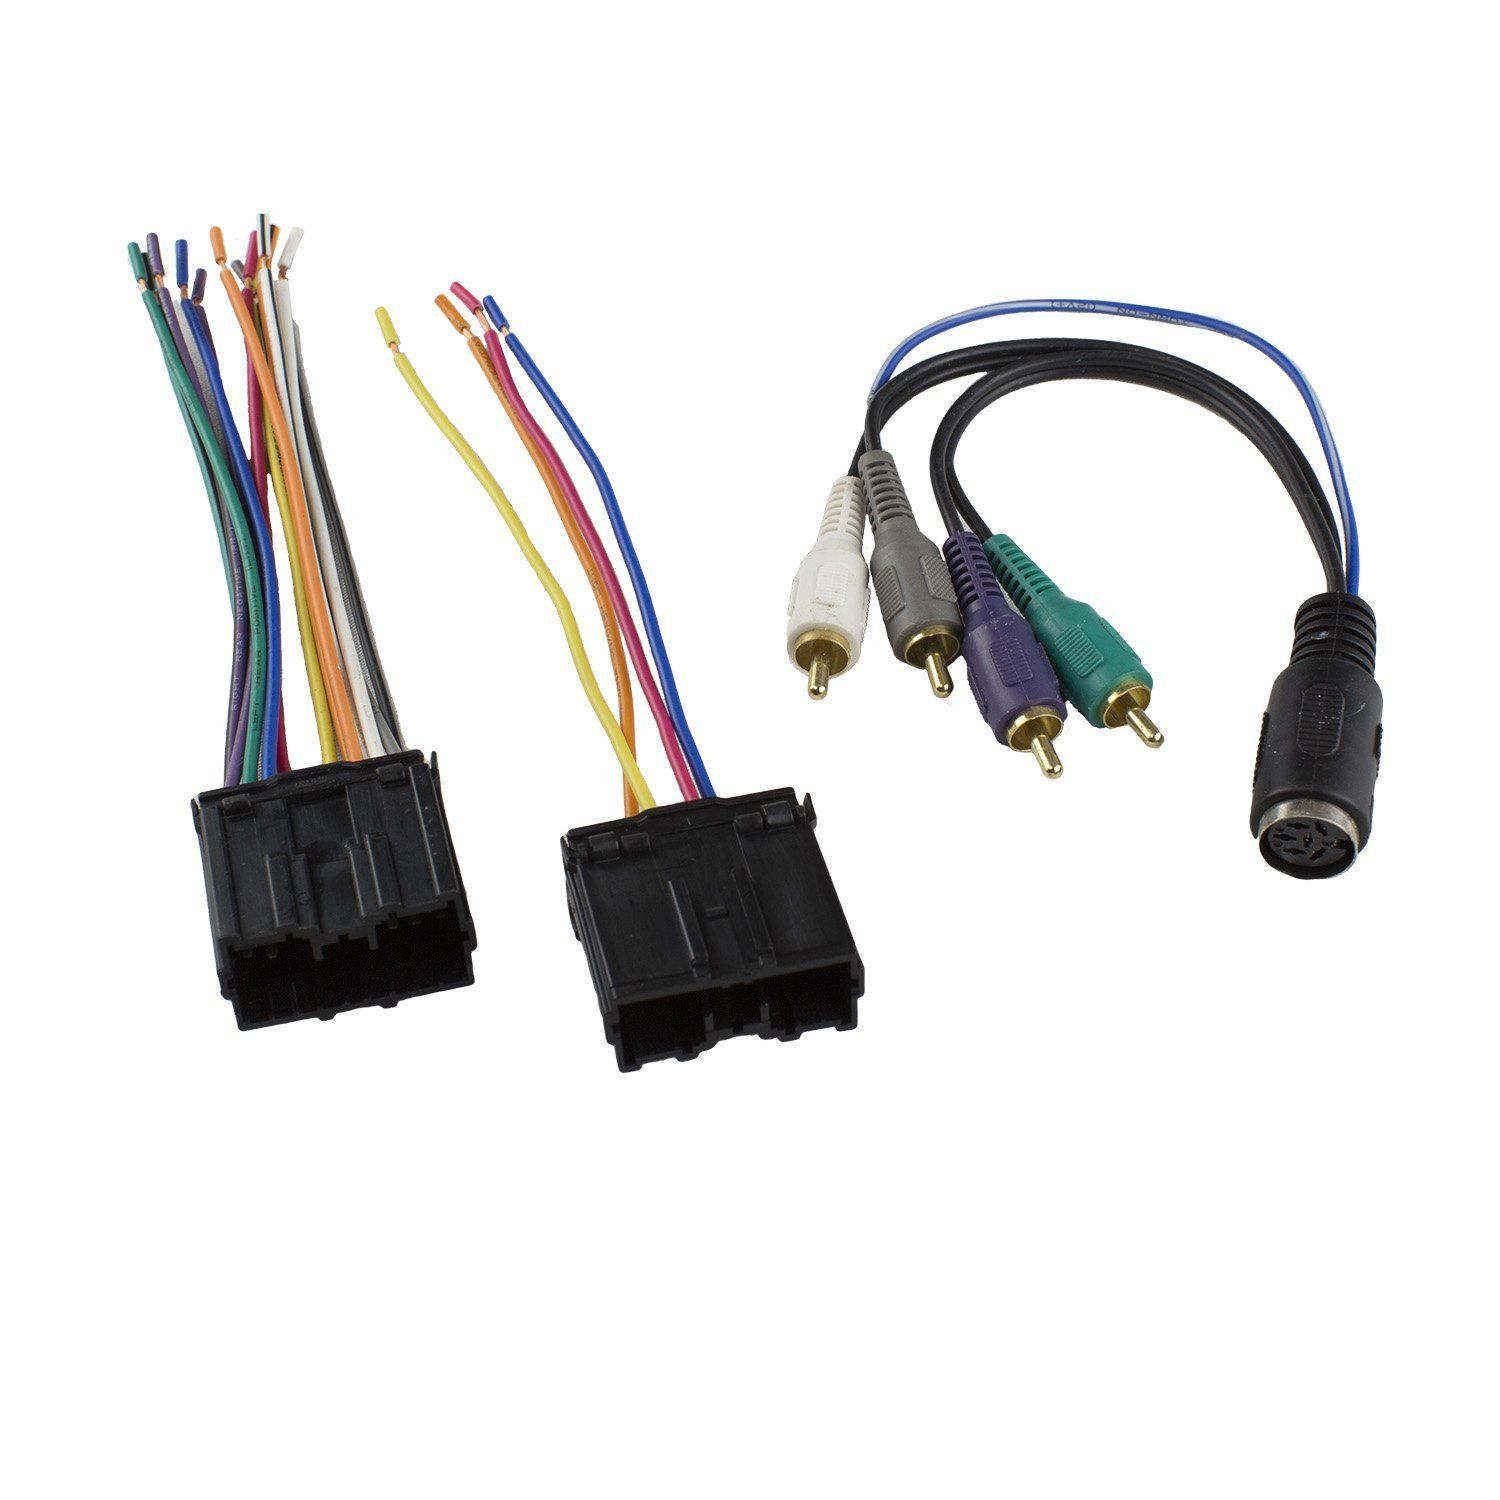 hight resolution of novosonics mif 7004 wiring harness for mitsubishi 4 speaker with amp integration 1994 2007 fits existing connector in your vehicle